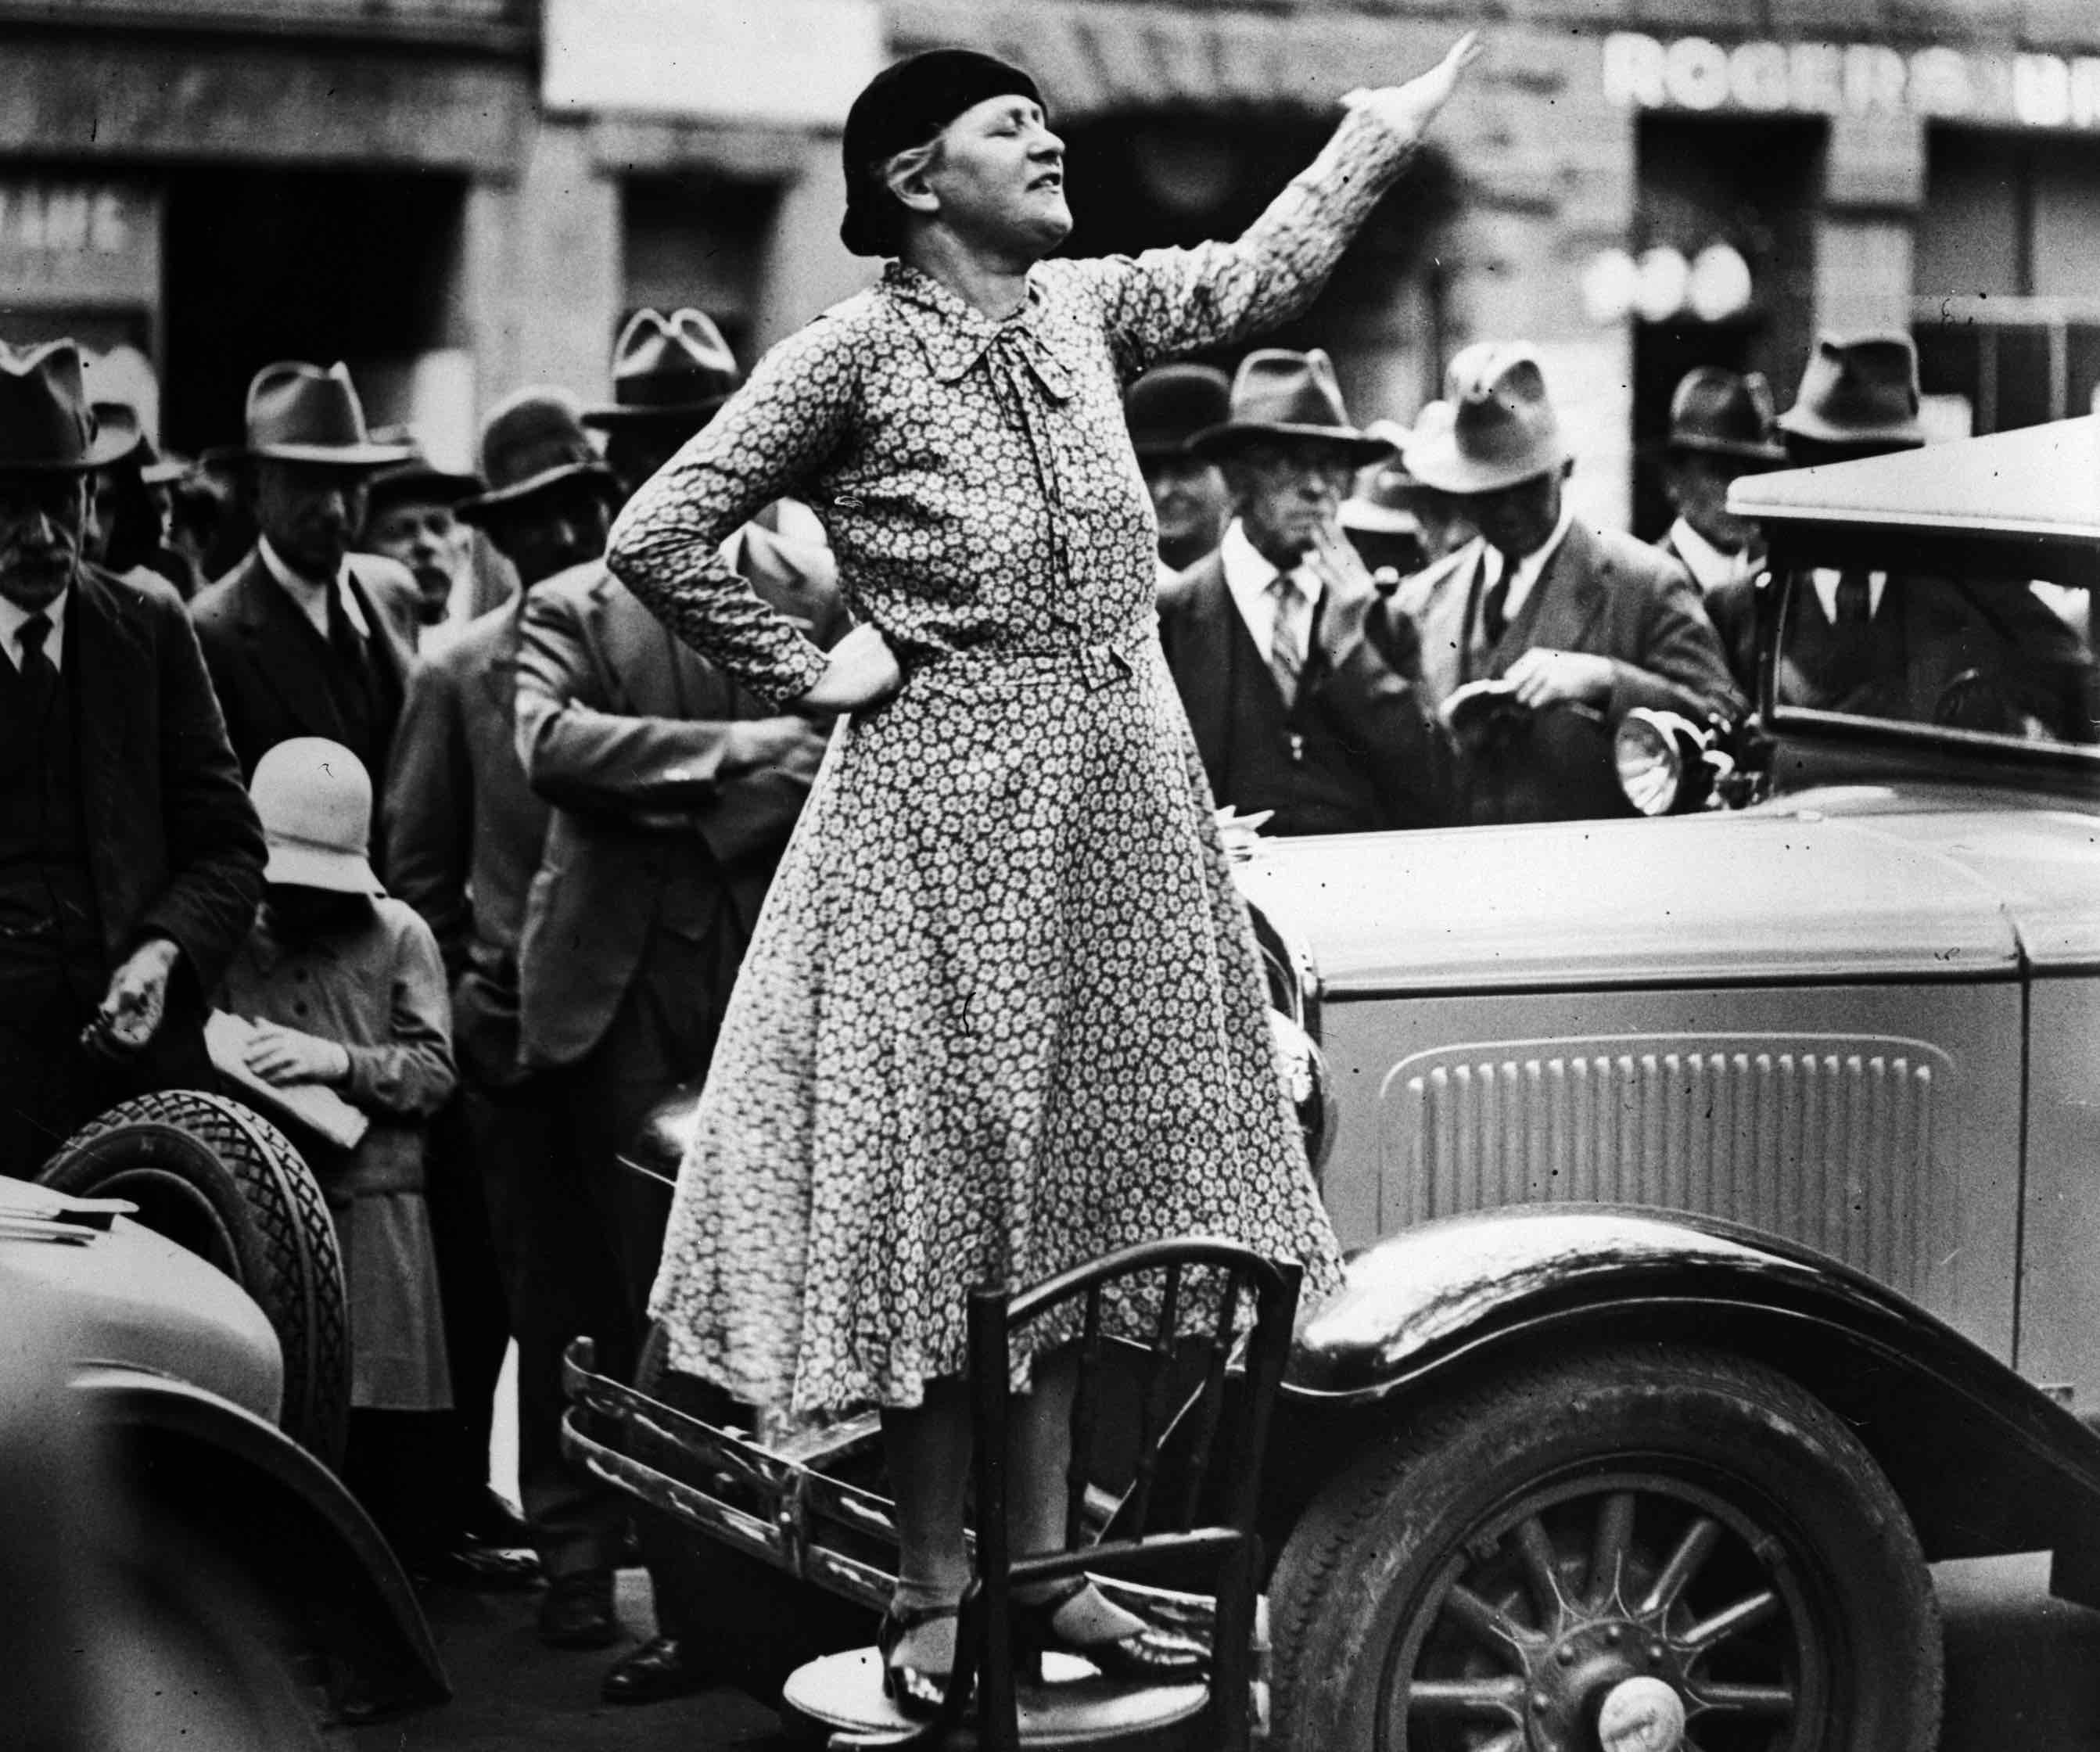 Adela Pankhurst, earlier a member of the Women's Peace Army, speaking in Sydney in 1931. (Photo: Fox Photos/Getty)